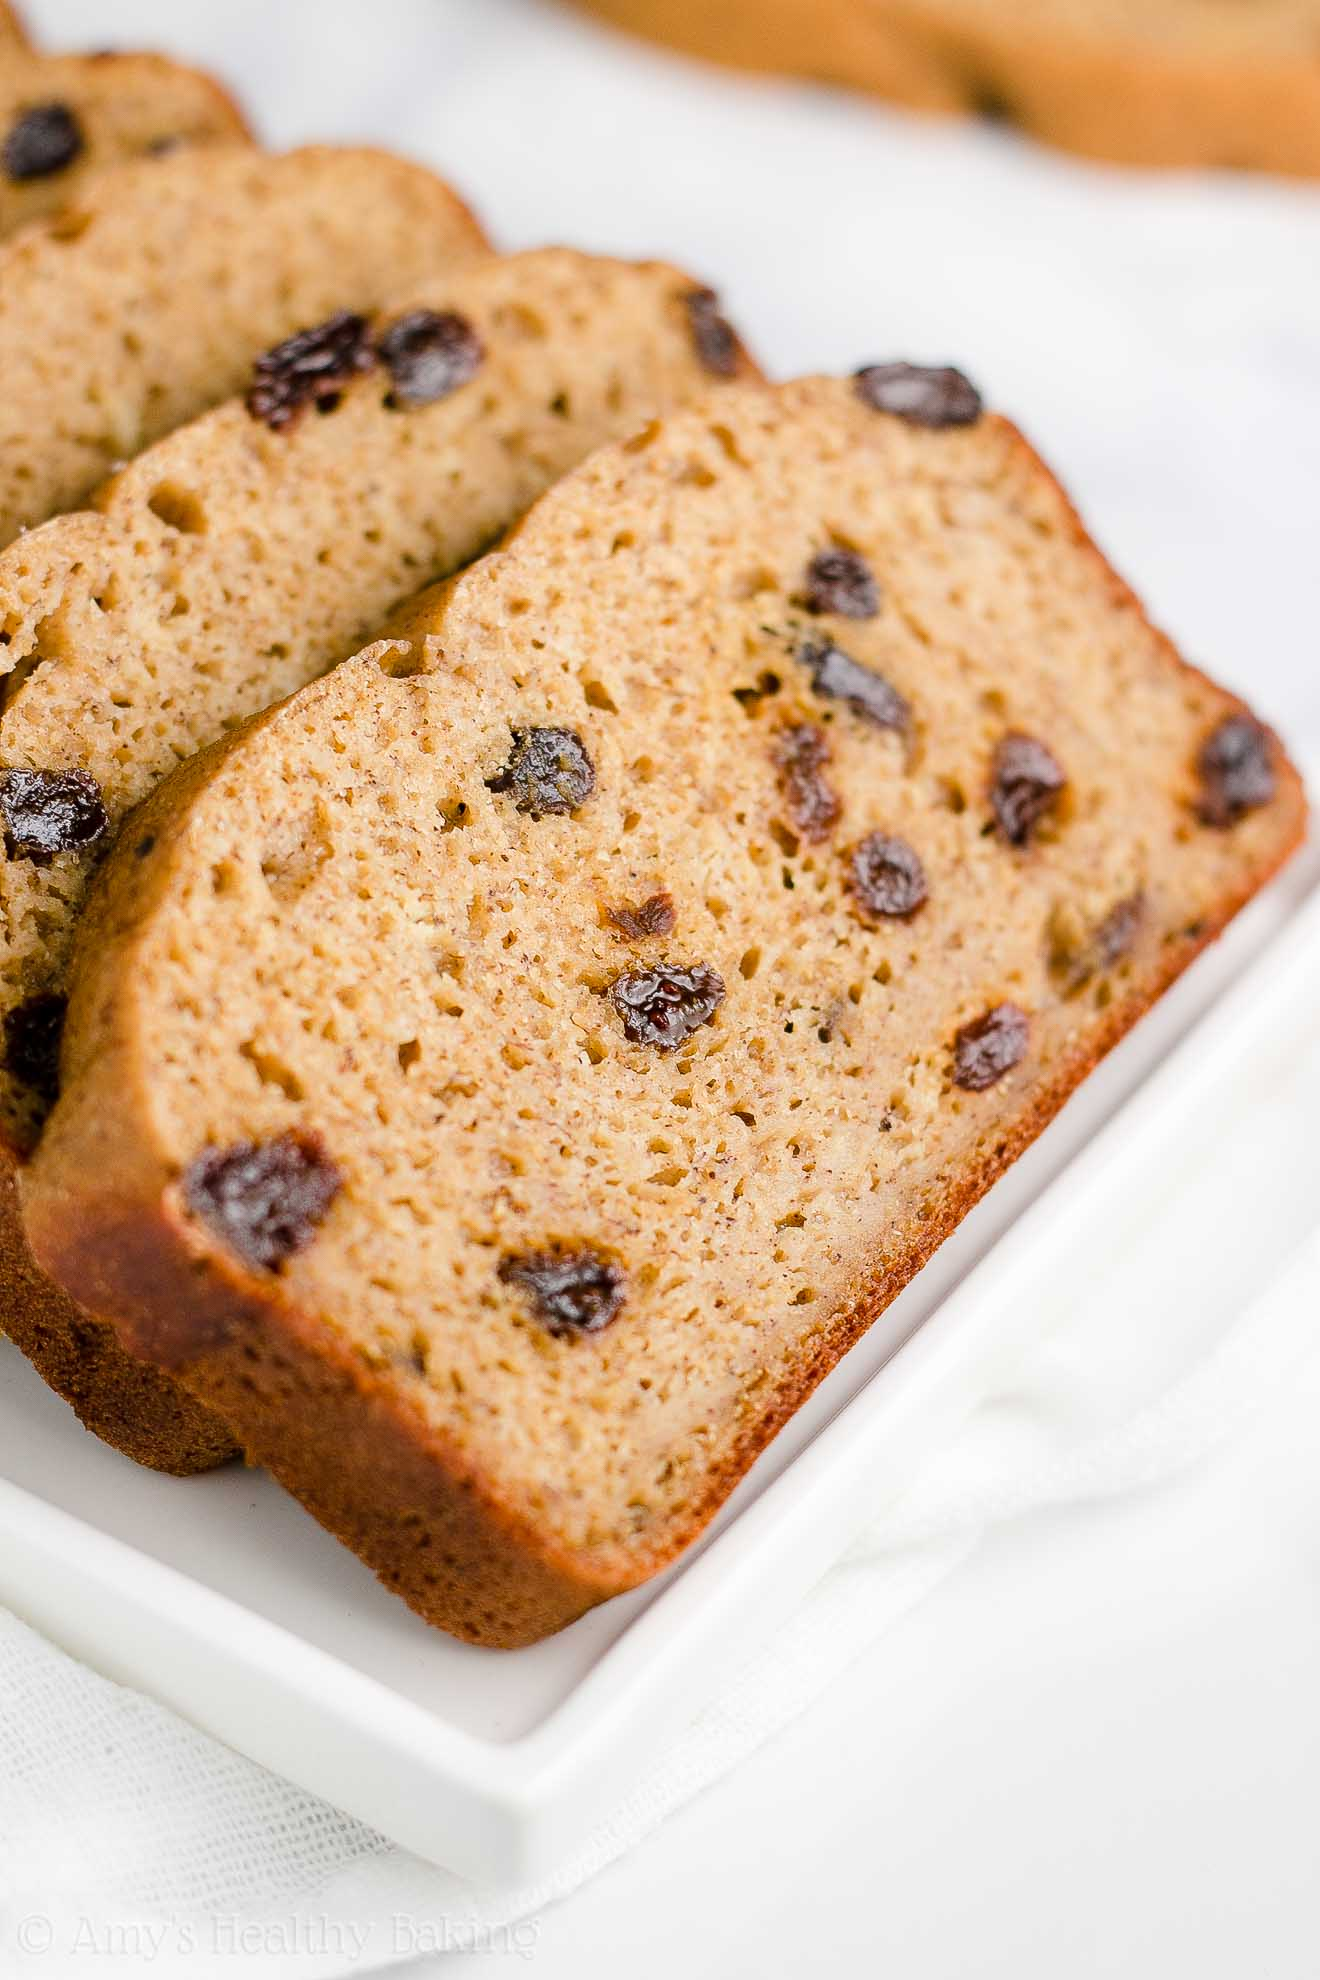 Healthy Clean Eating Gluten Free Cinnamon Raisin Banana Bread